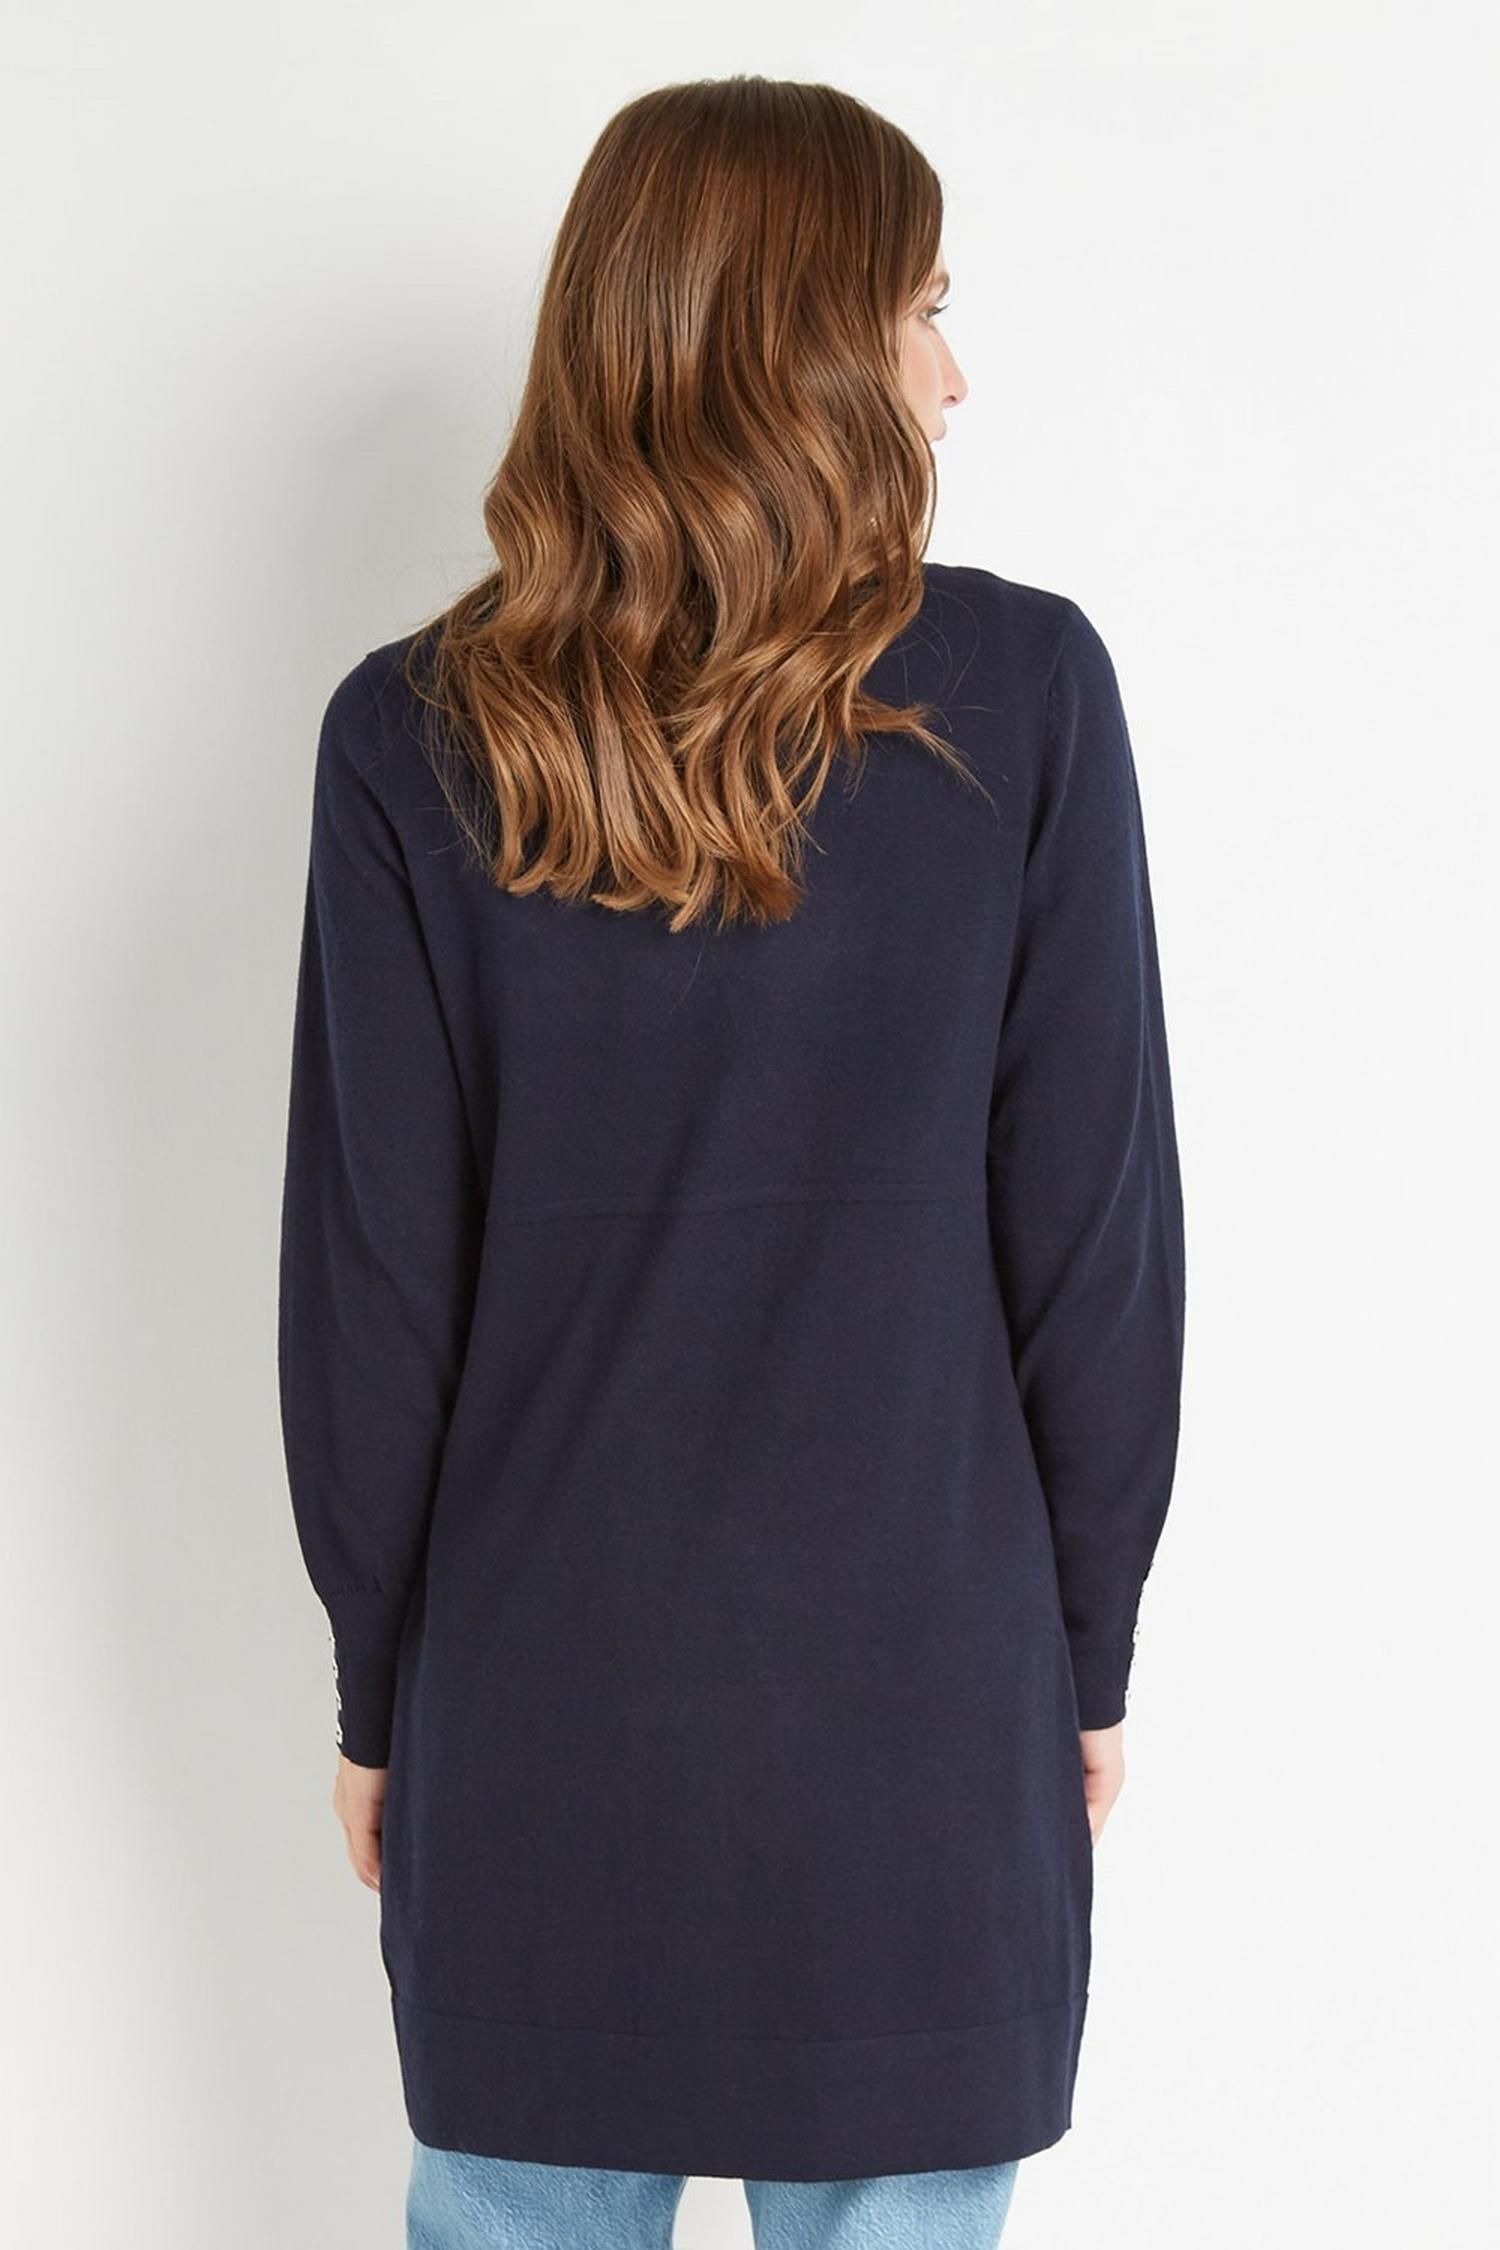 148 Navy Wool Blend Cardigan image number 3